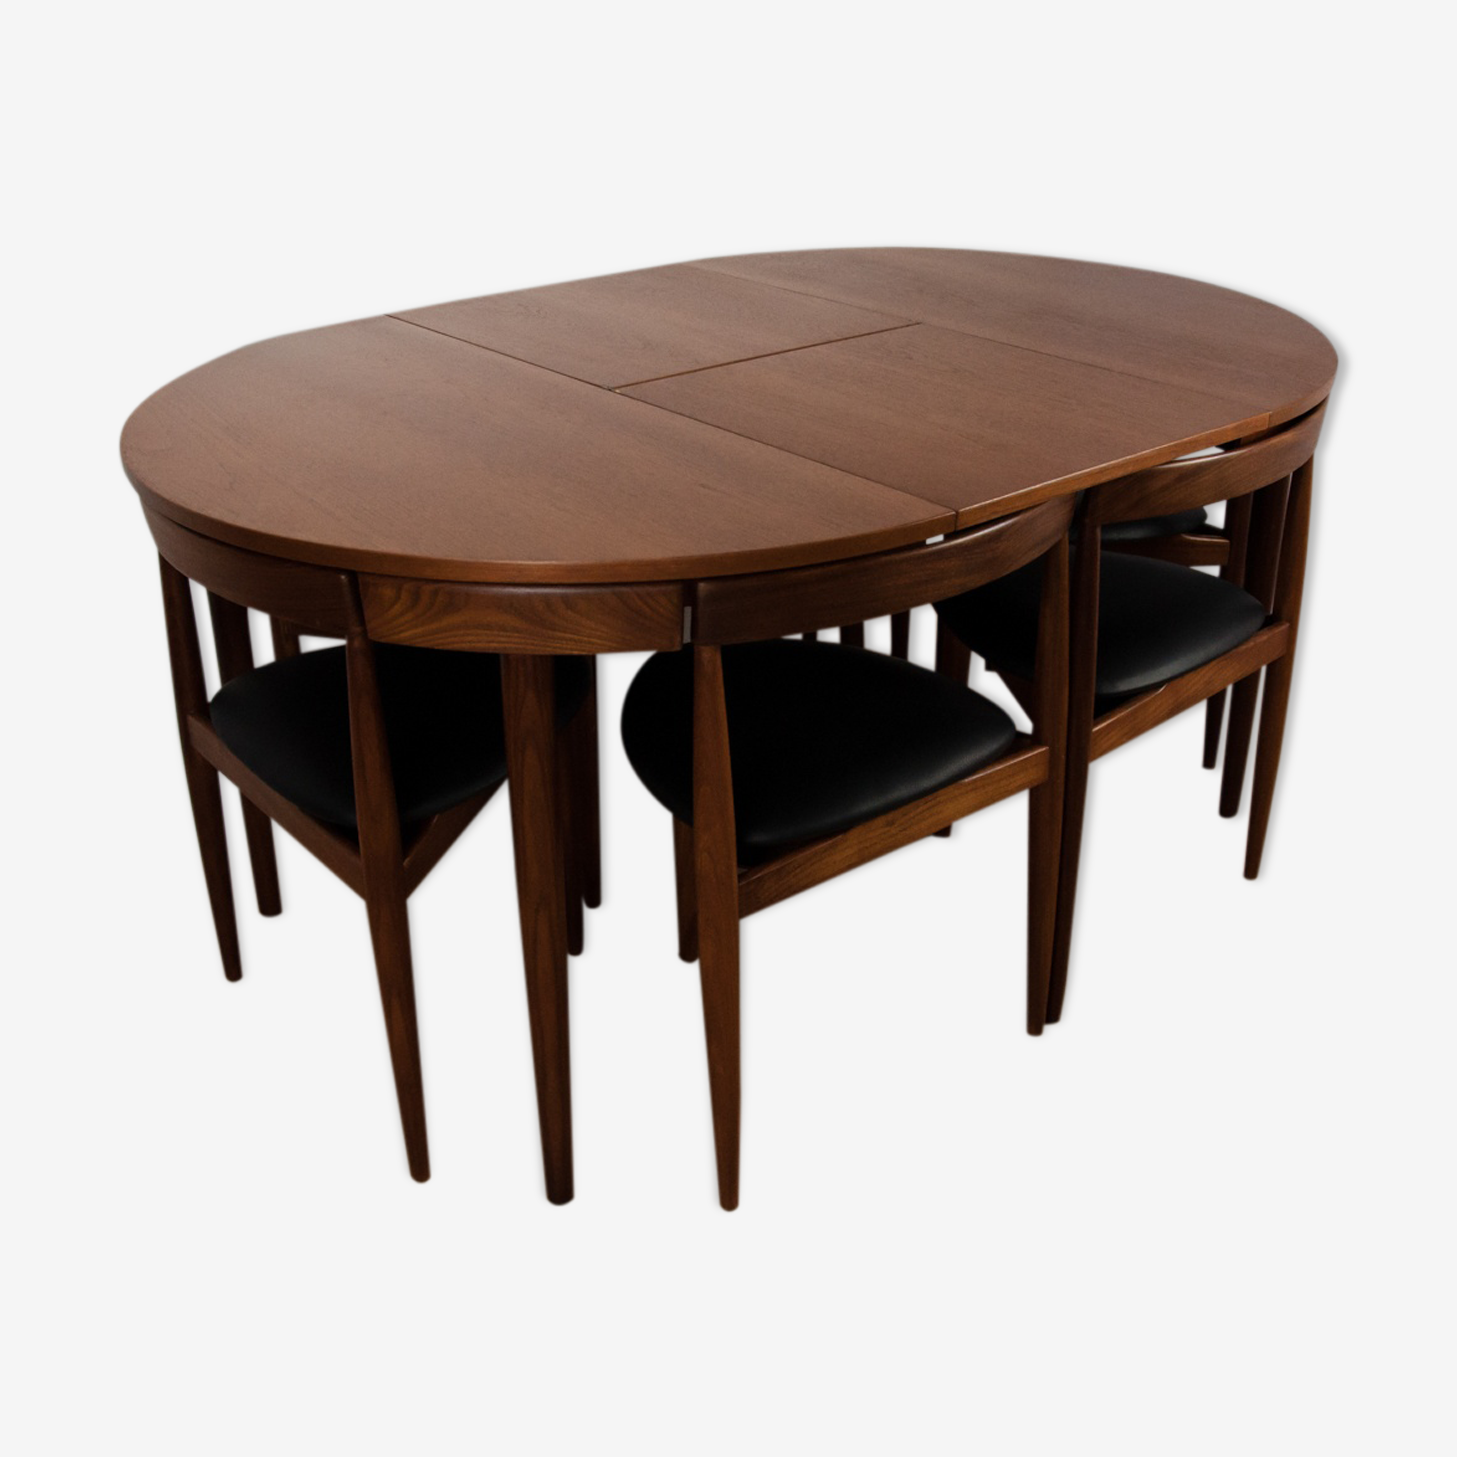 Extendable teak dining table & 6 chairs by H.Olsen for Frem Røjle, 1950